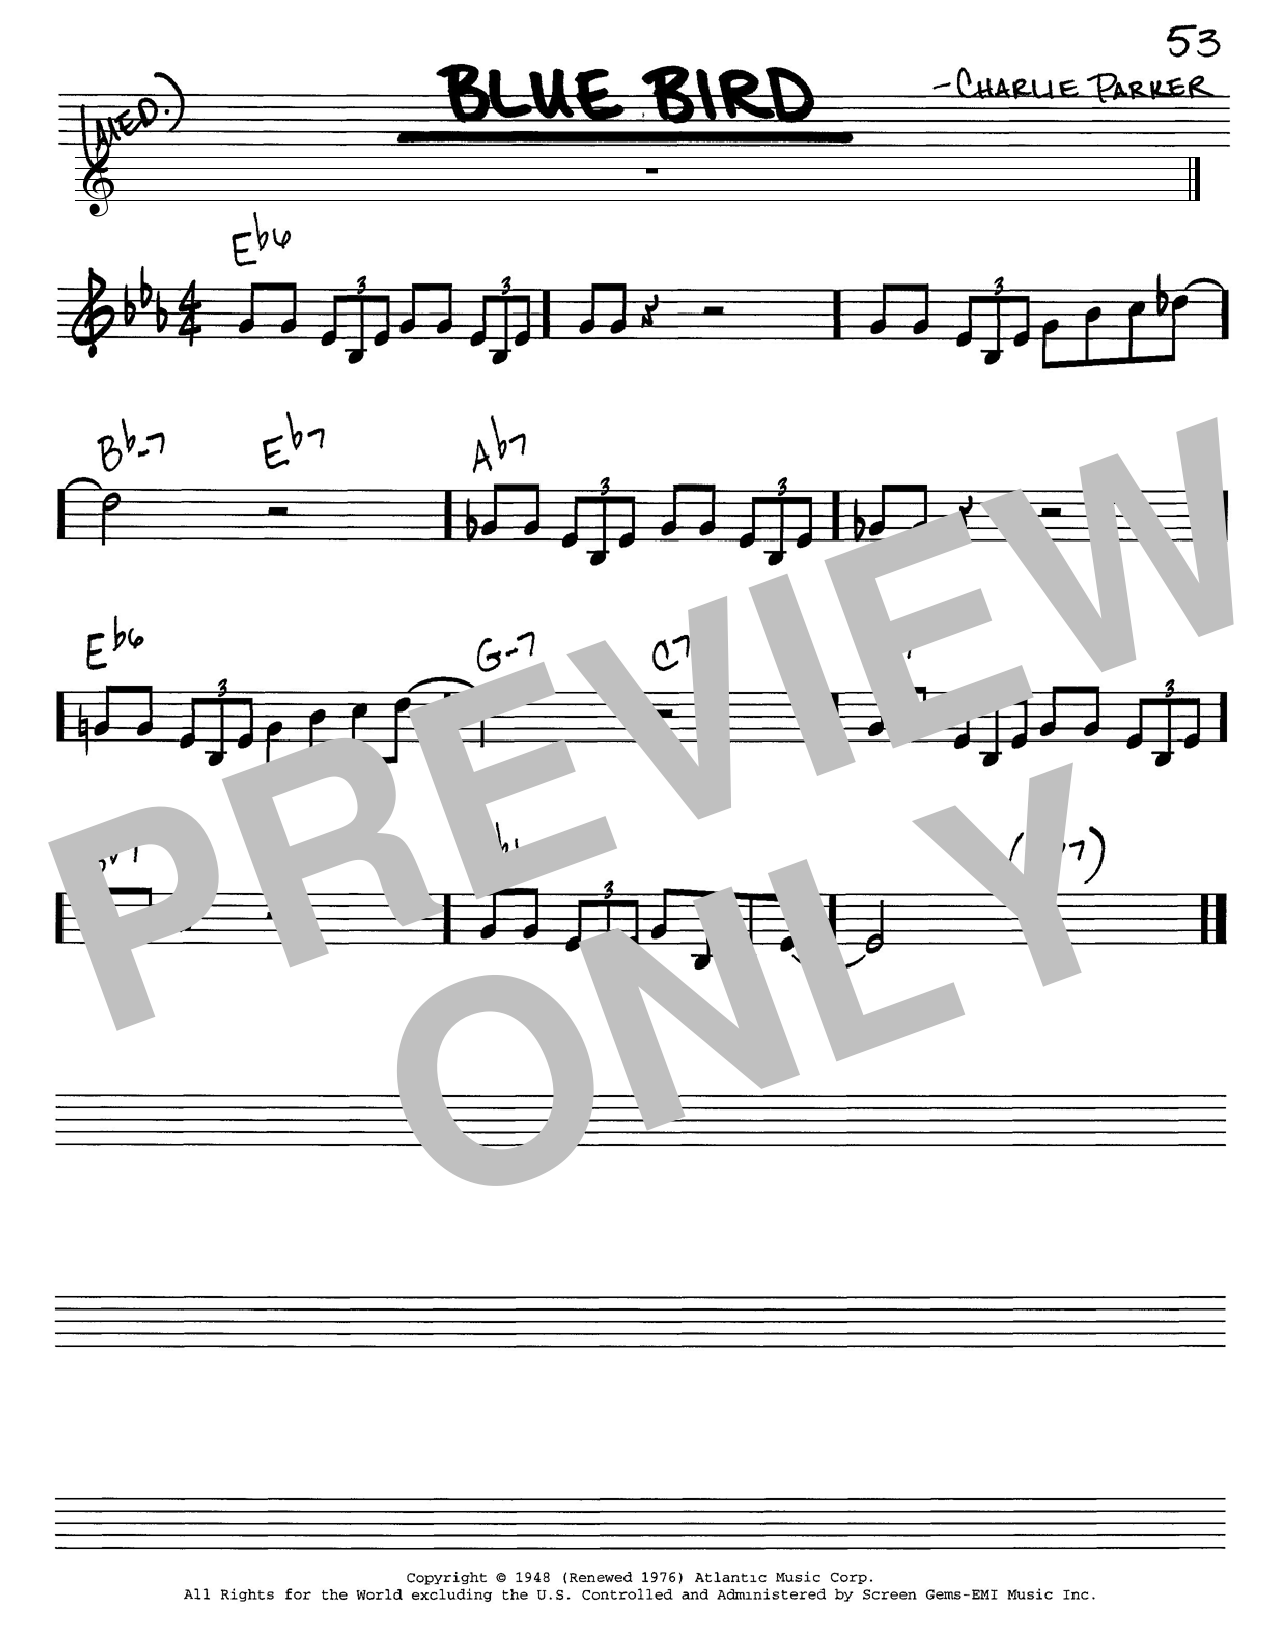 Charlie Parker Blue Bird sheet music notes and chords. Download Printable PDF.